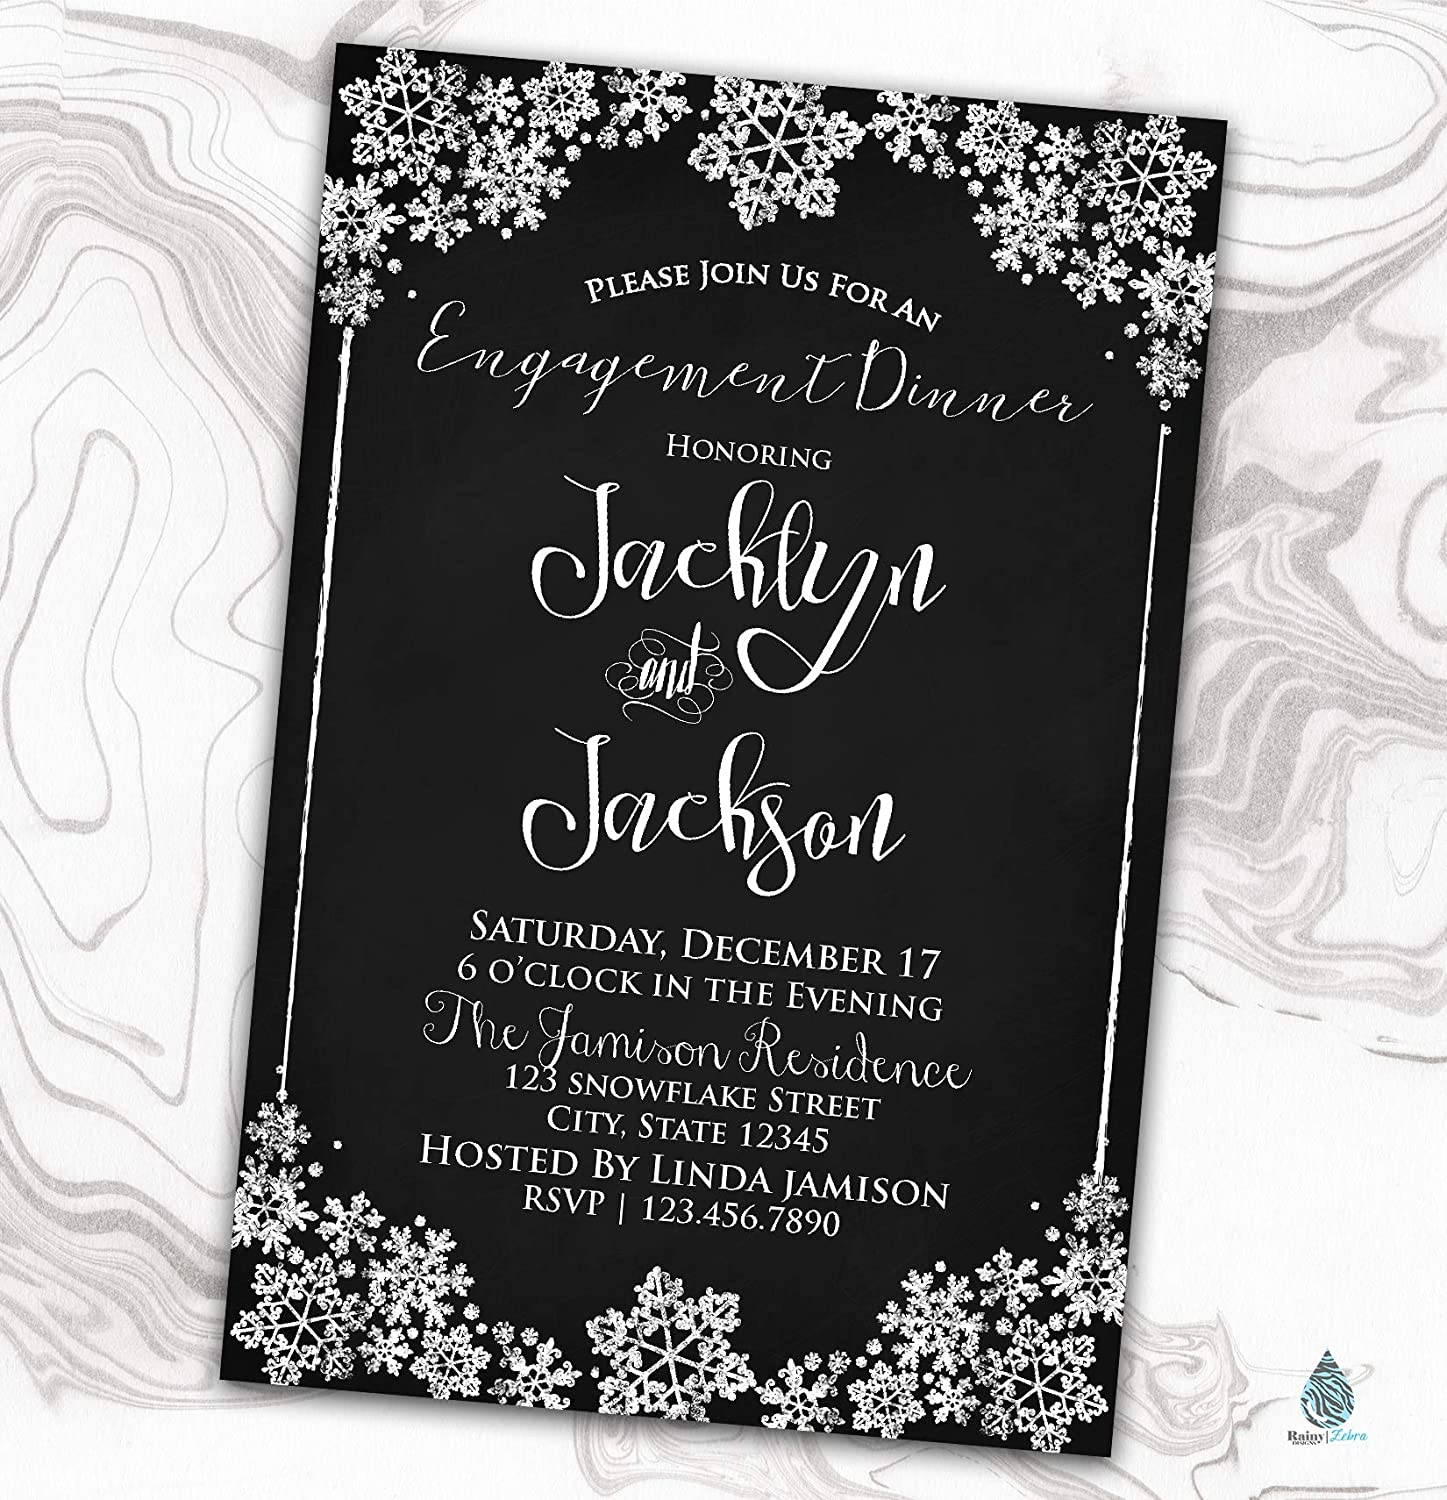 Direct store Snowflake 2021 spring and summer new Engagement Invitation - Winter Invite Wedding Shower